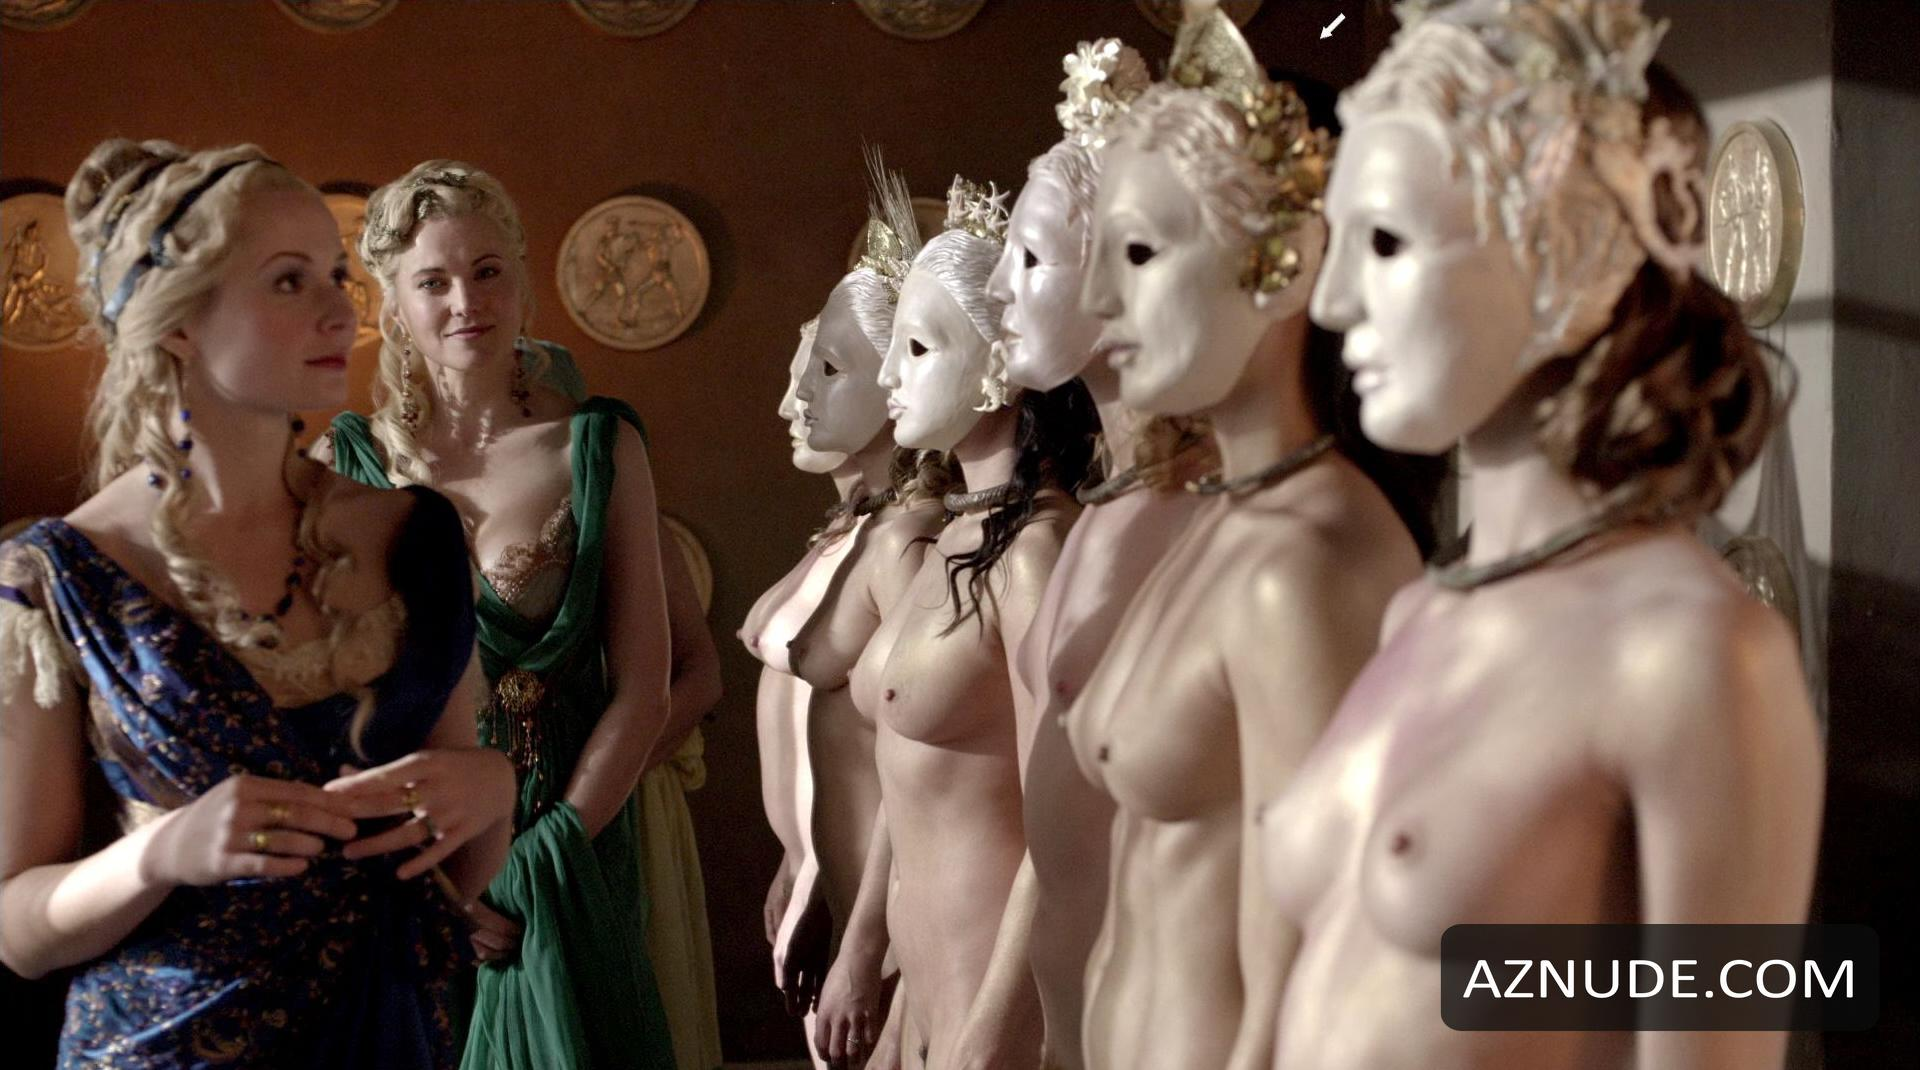 Viva bianca erin cummings katrina law and lucy lawless - 1 part 8